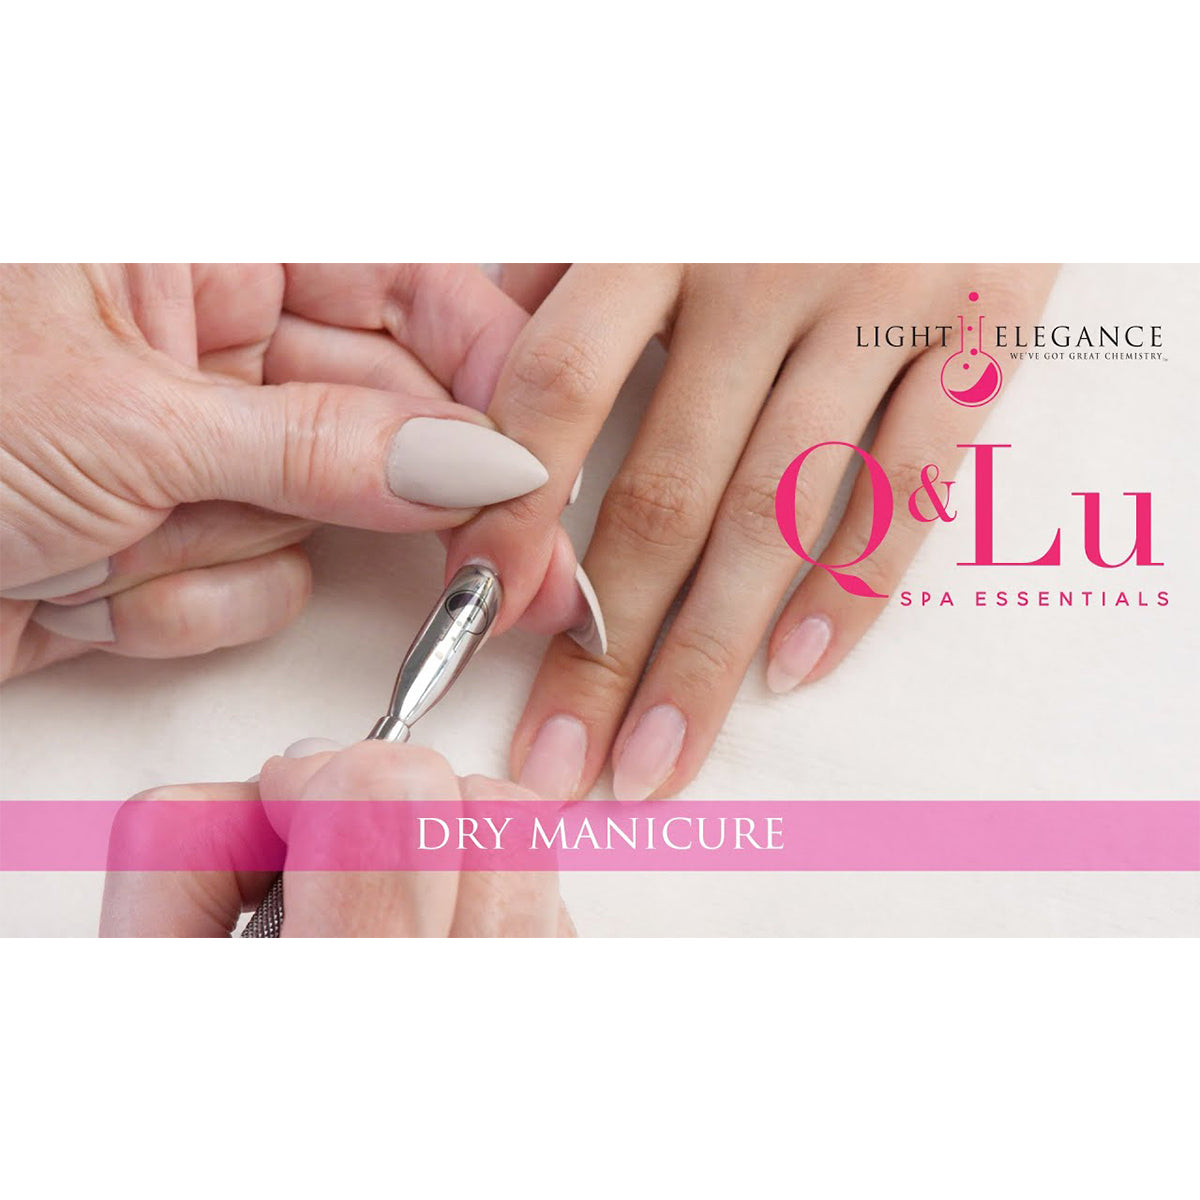 Dry Manicure Step-by-Step using Q&Lu Spa Essentials